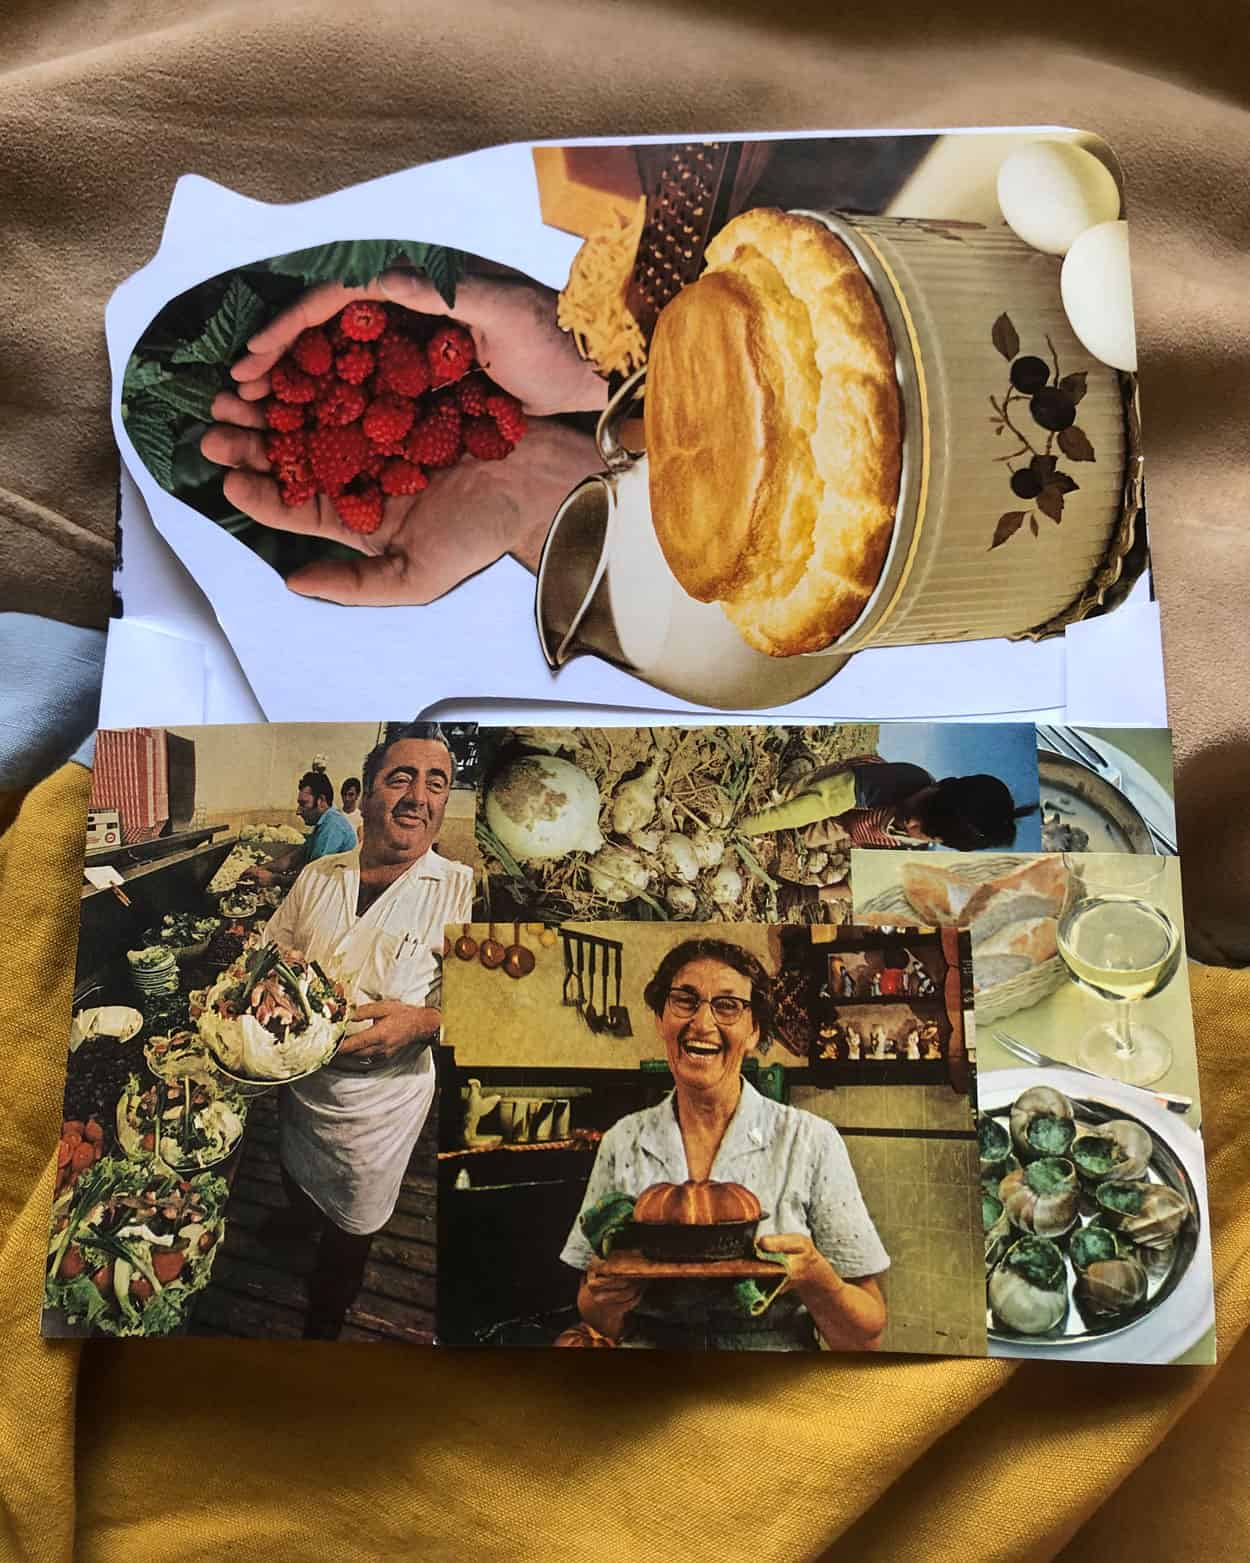 Collage of food. Food items include escargot, root vegetables in the ground, a man caring a dish and a woman caring a cake, and a soufflé with eggs and raspberries.